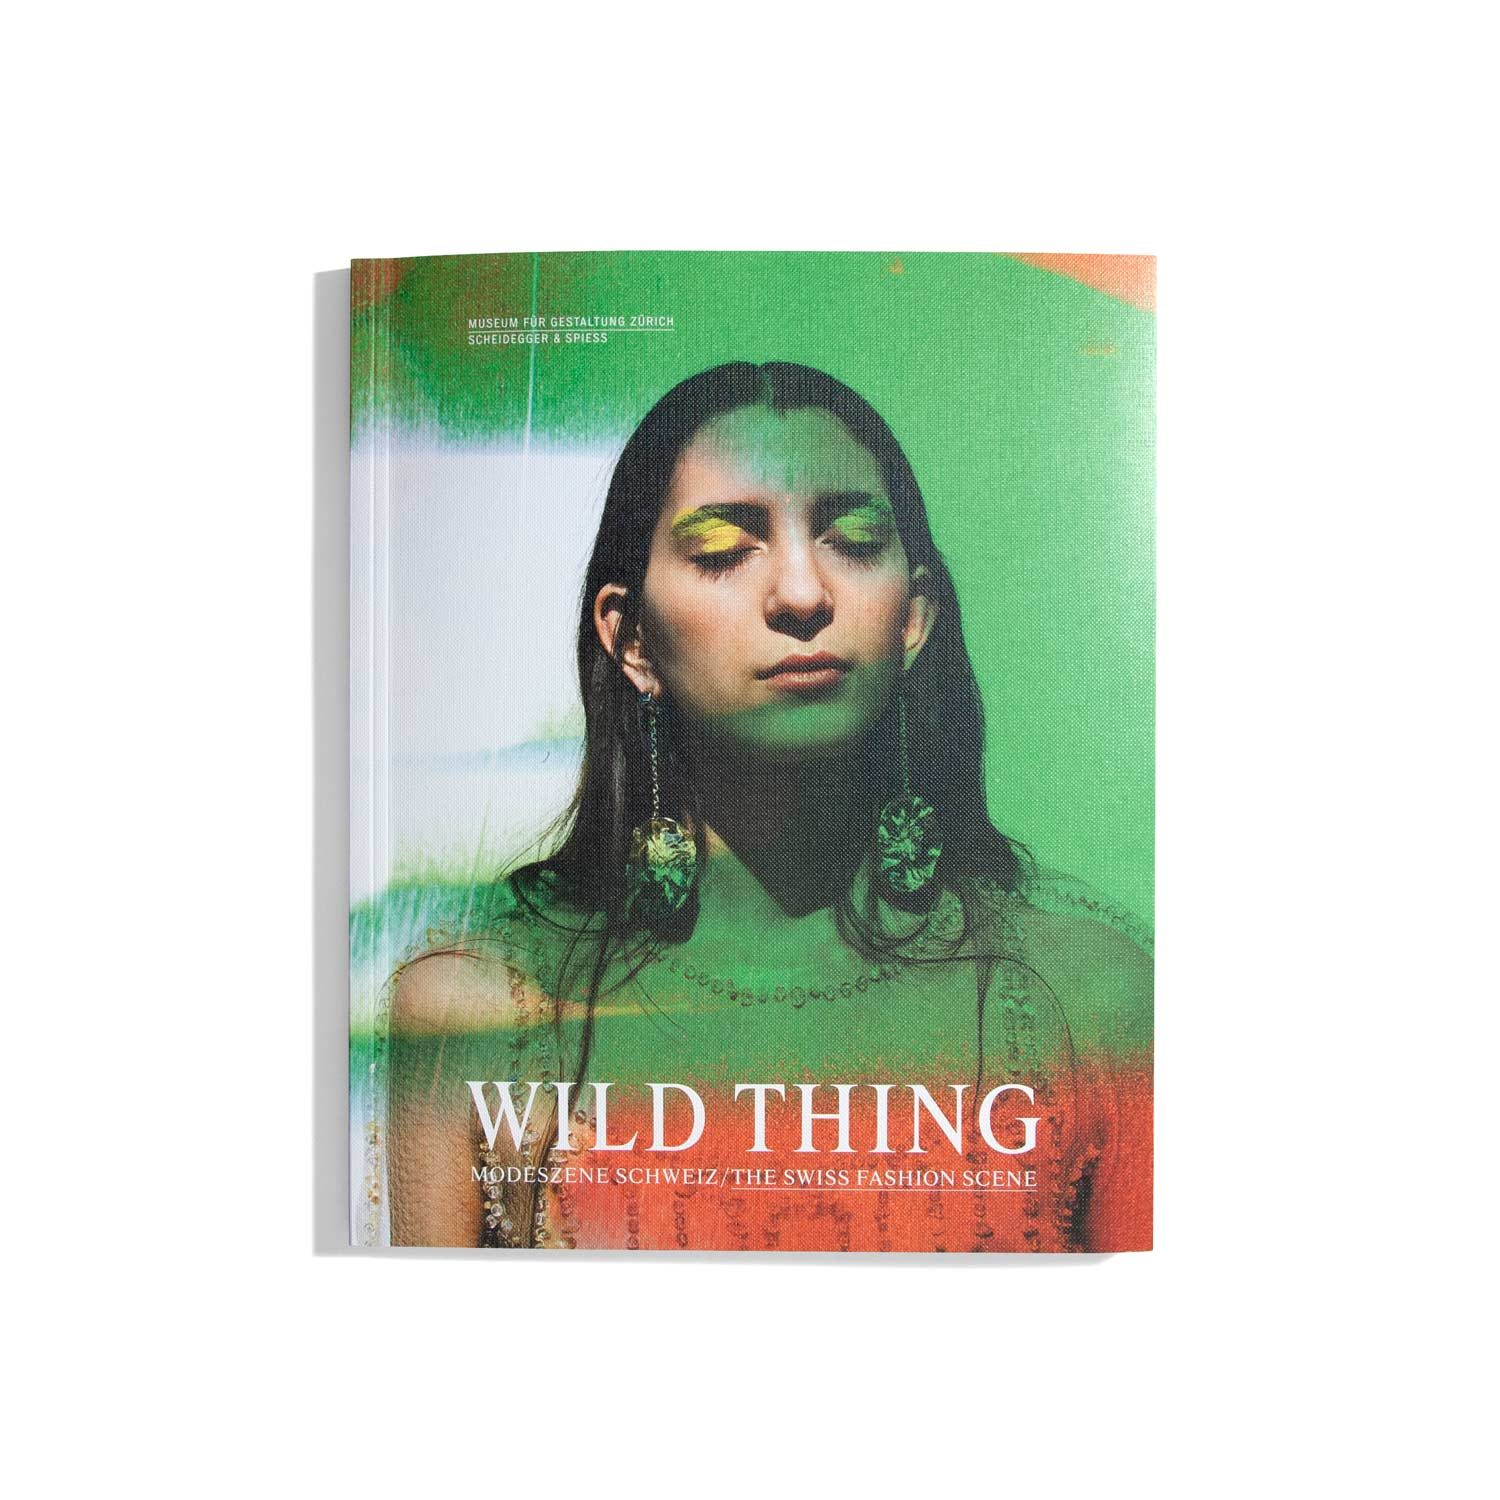 Wild Thing - Modeszene Schweiz/ The Swiss Fashion Scene